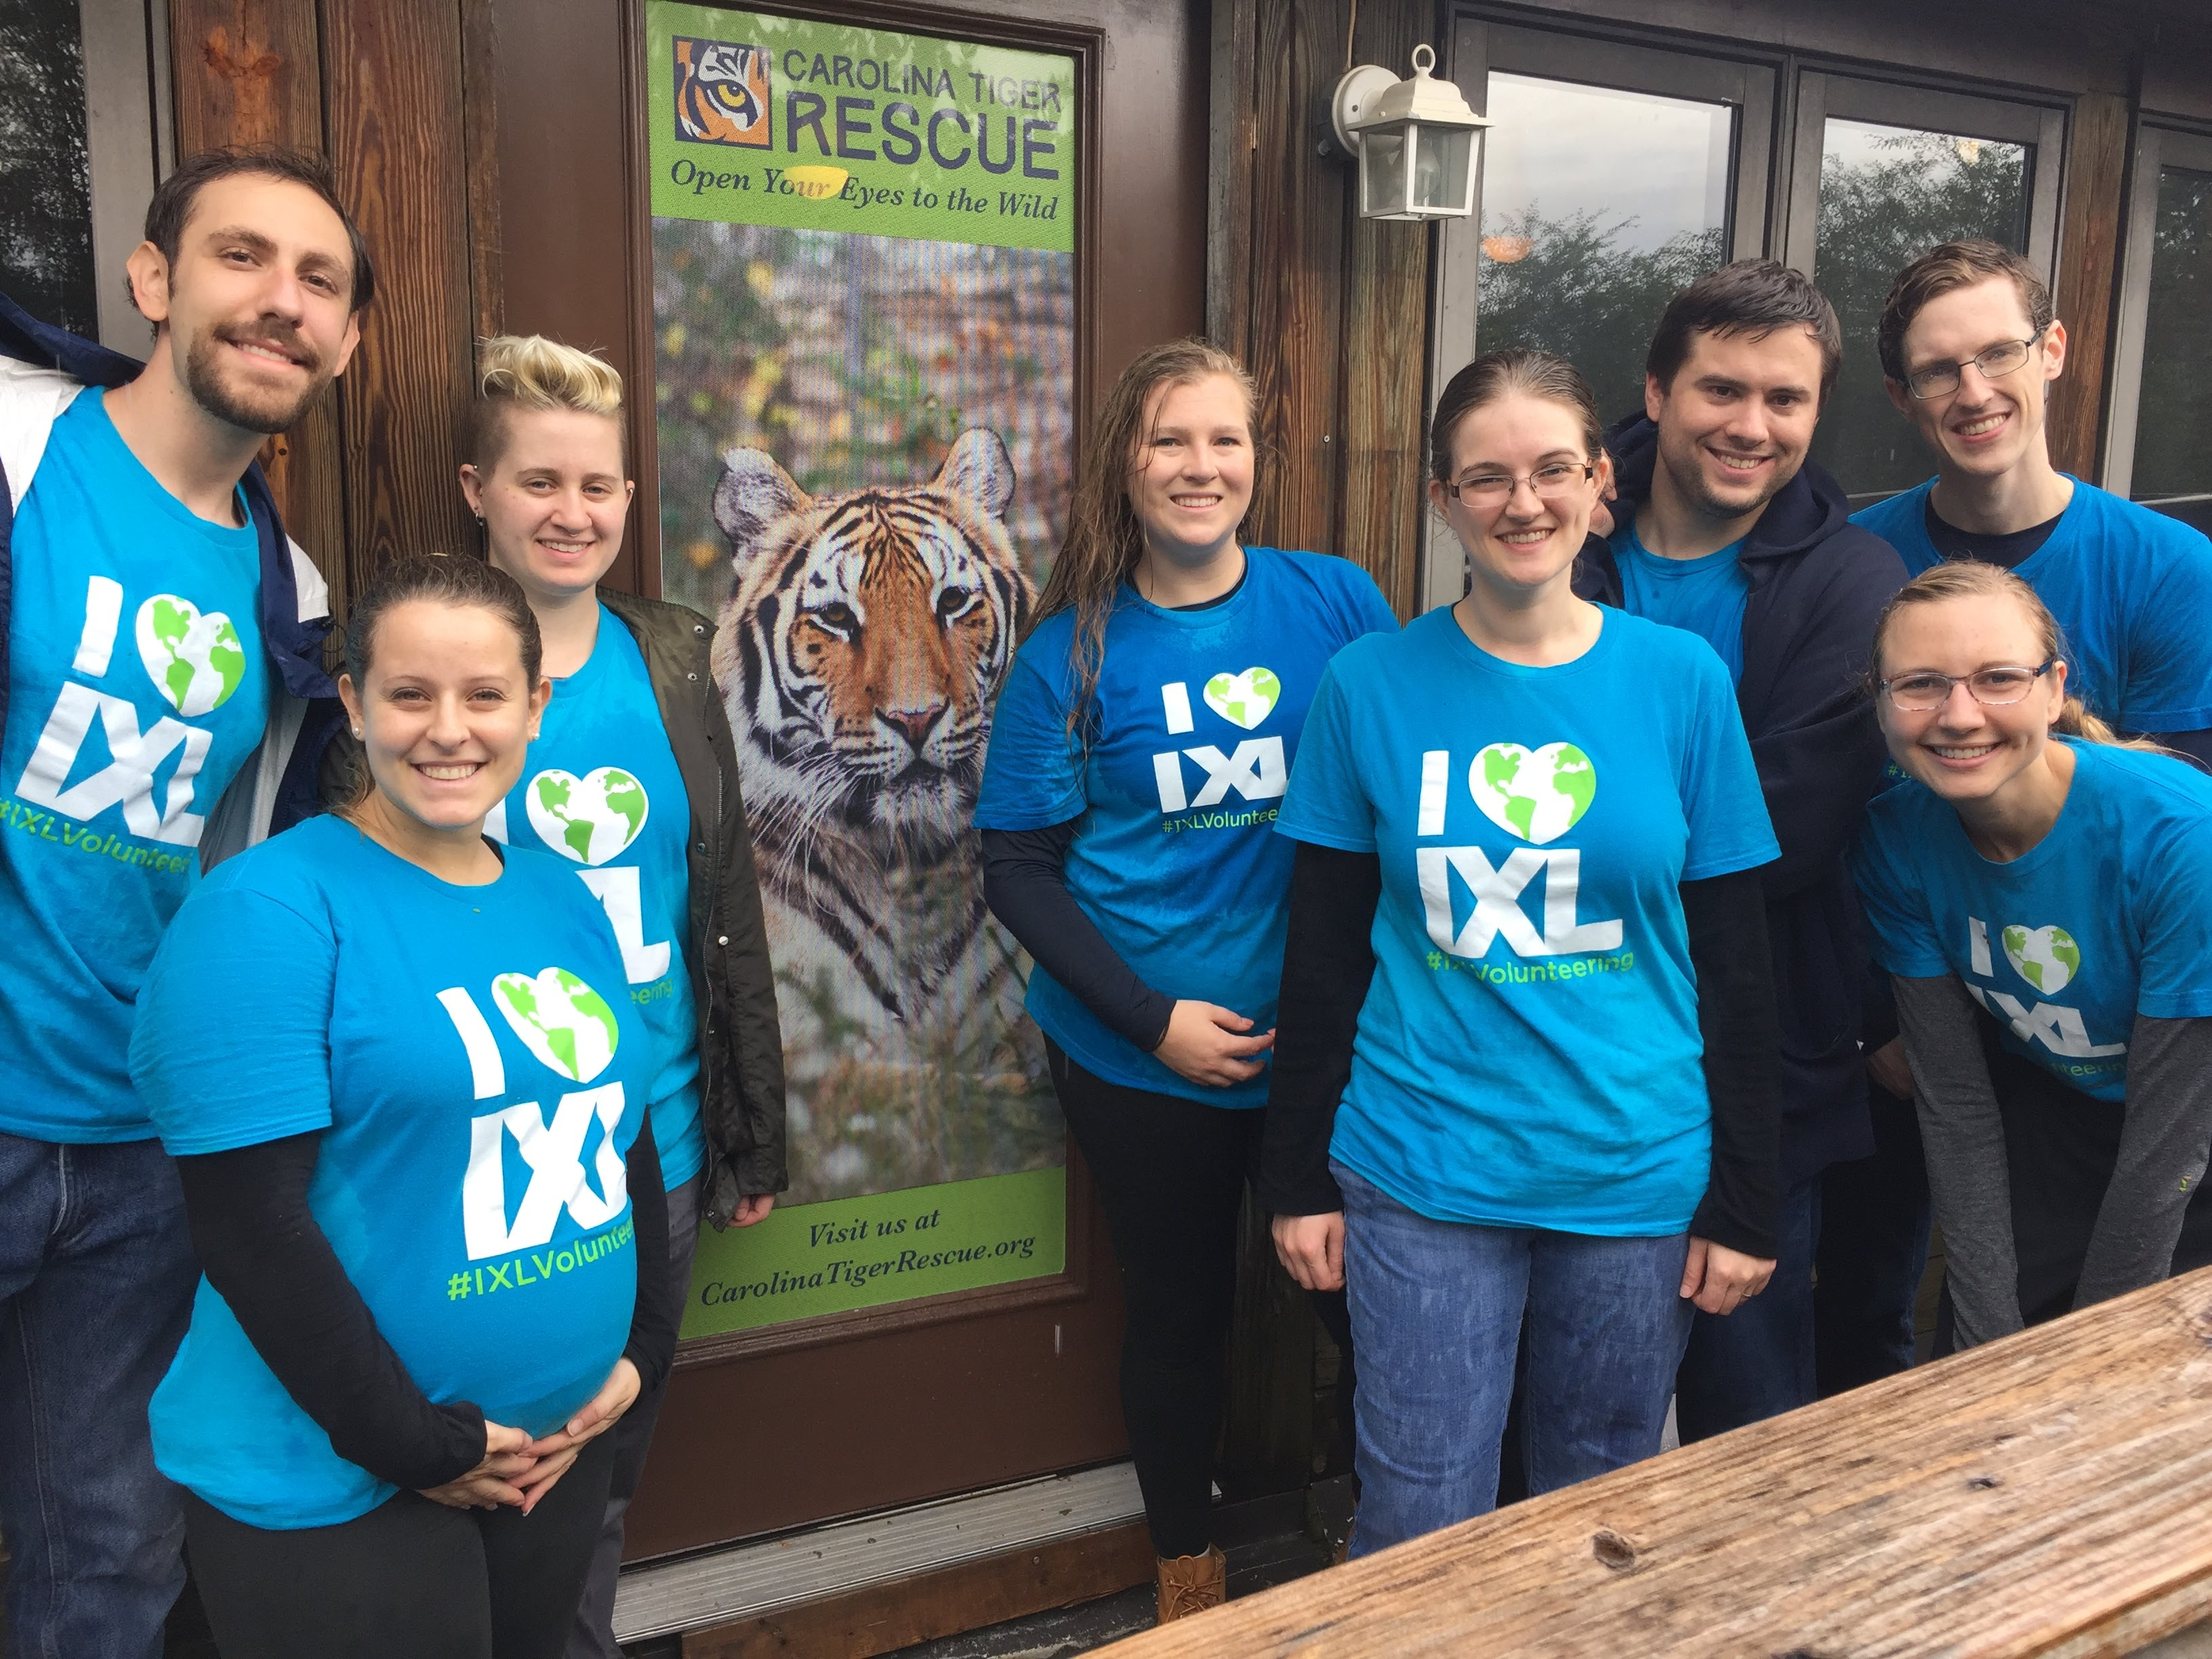 Earning Their Stripes: IXLers Volunteer at the Carolina Tiger Rescue